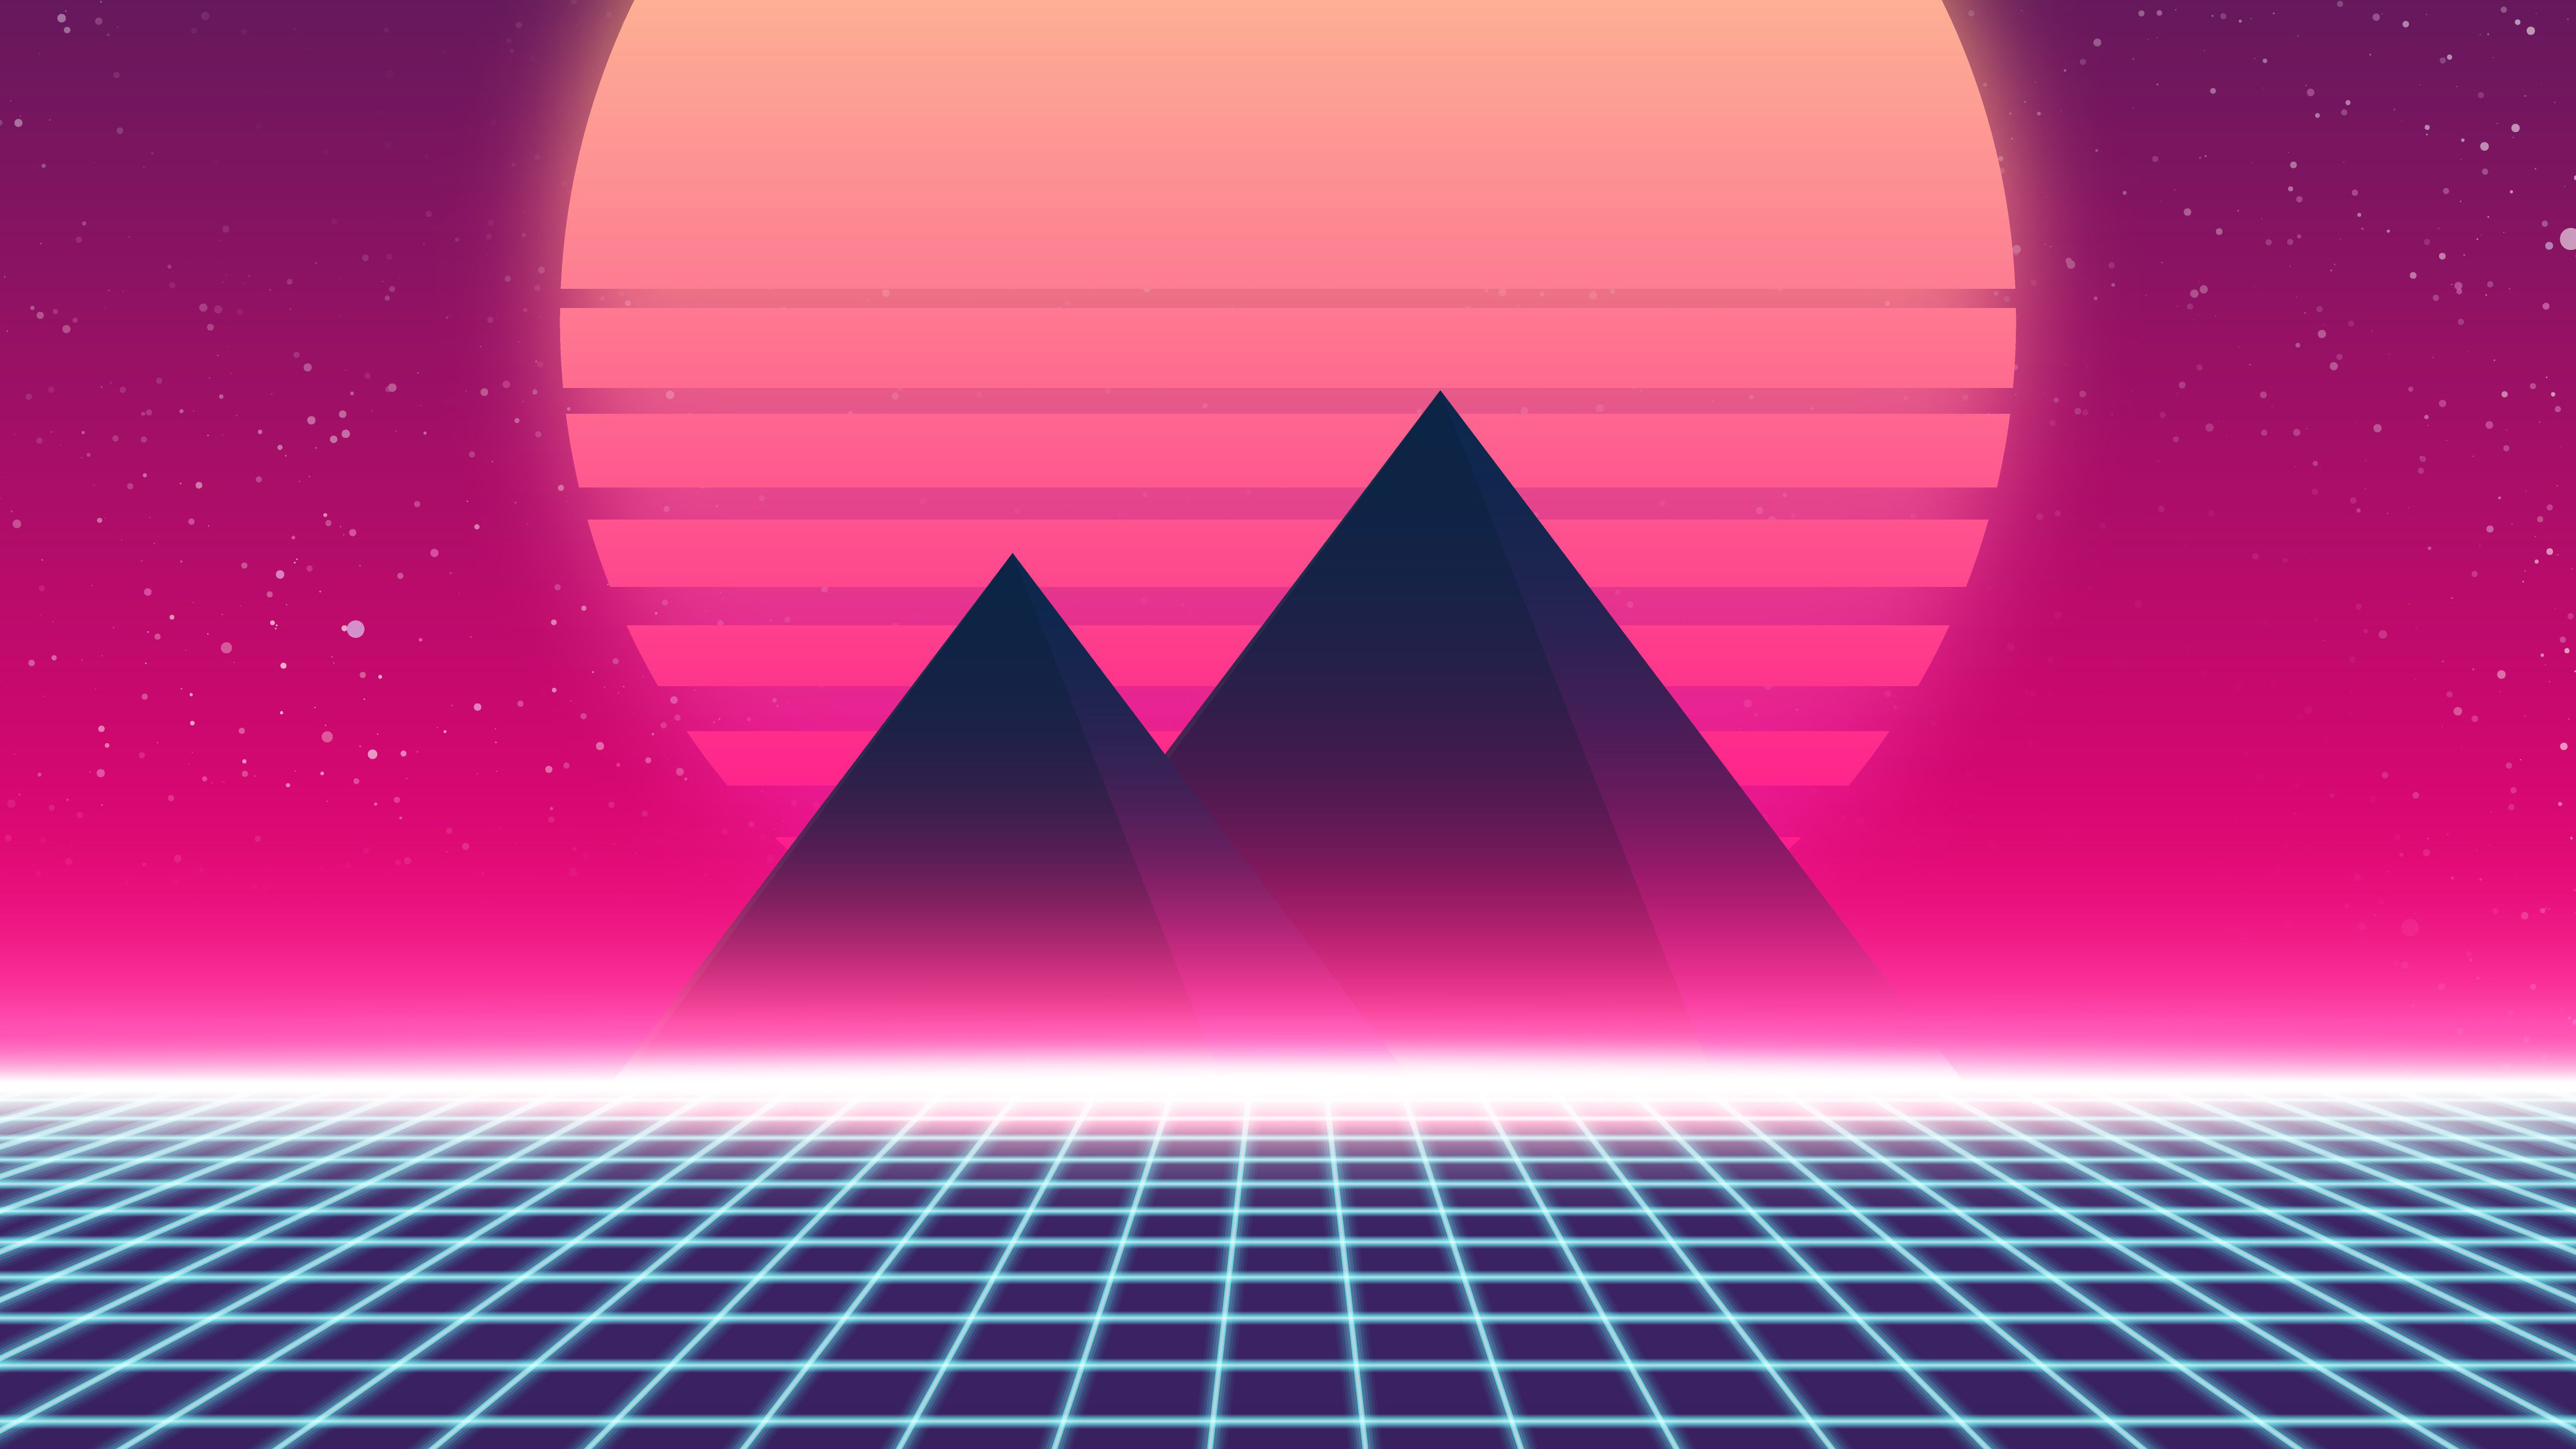 90 S Walls Google Search: 1360x768 Retrowave 90s Laptop HD HD 4k Wallpapers, Images